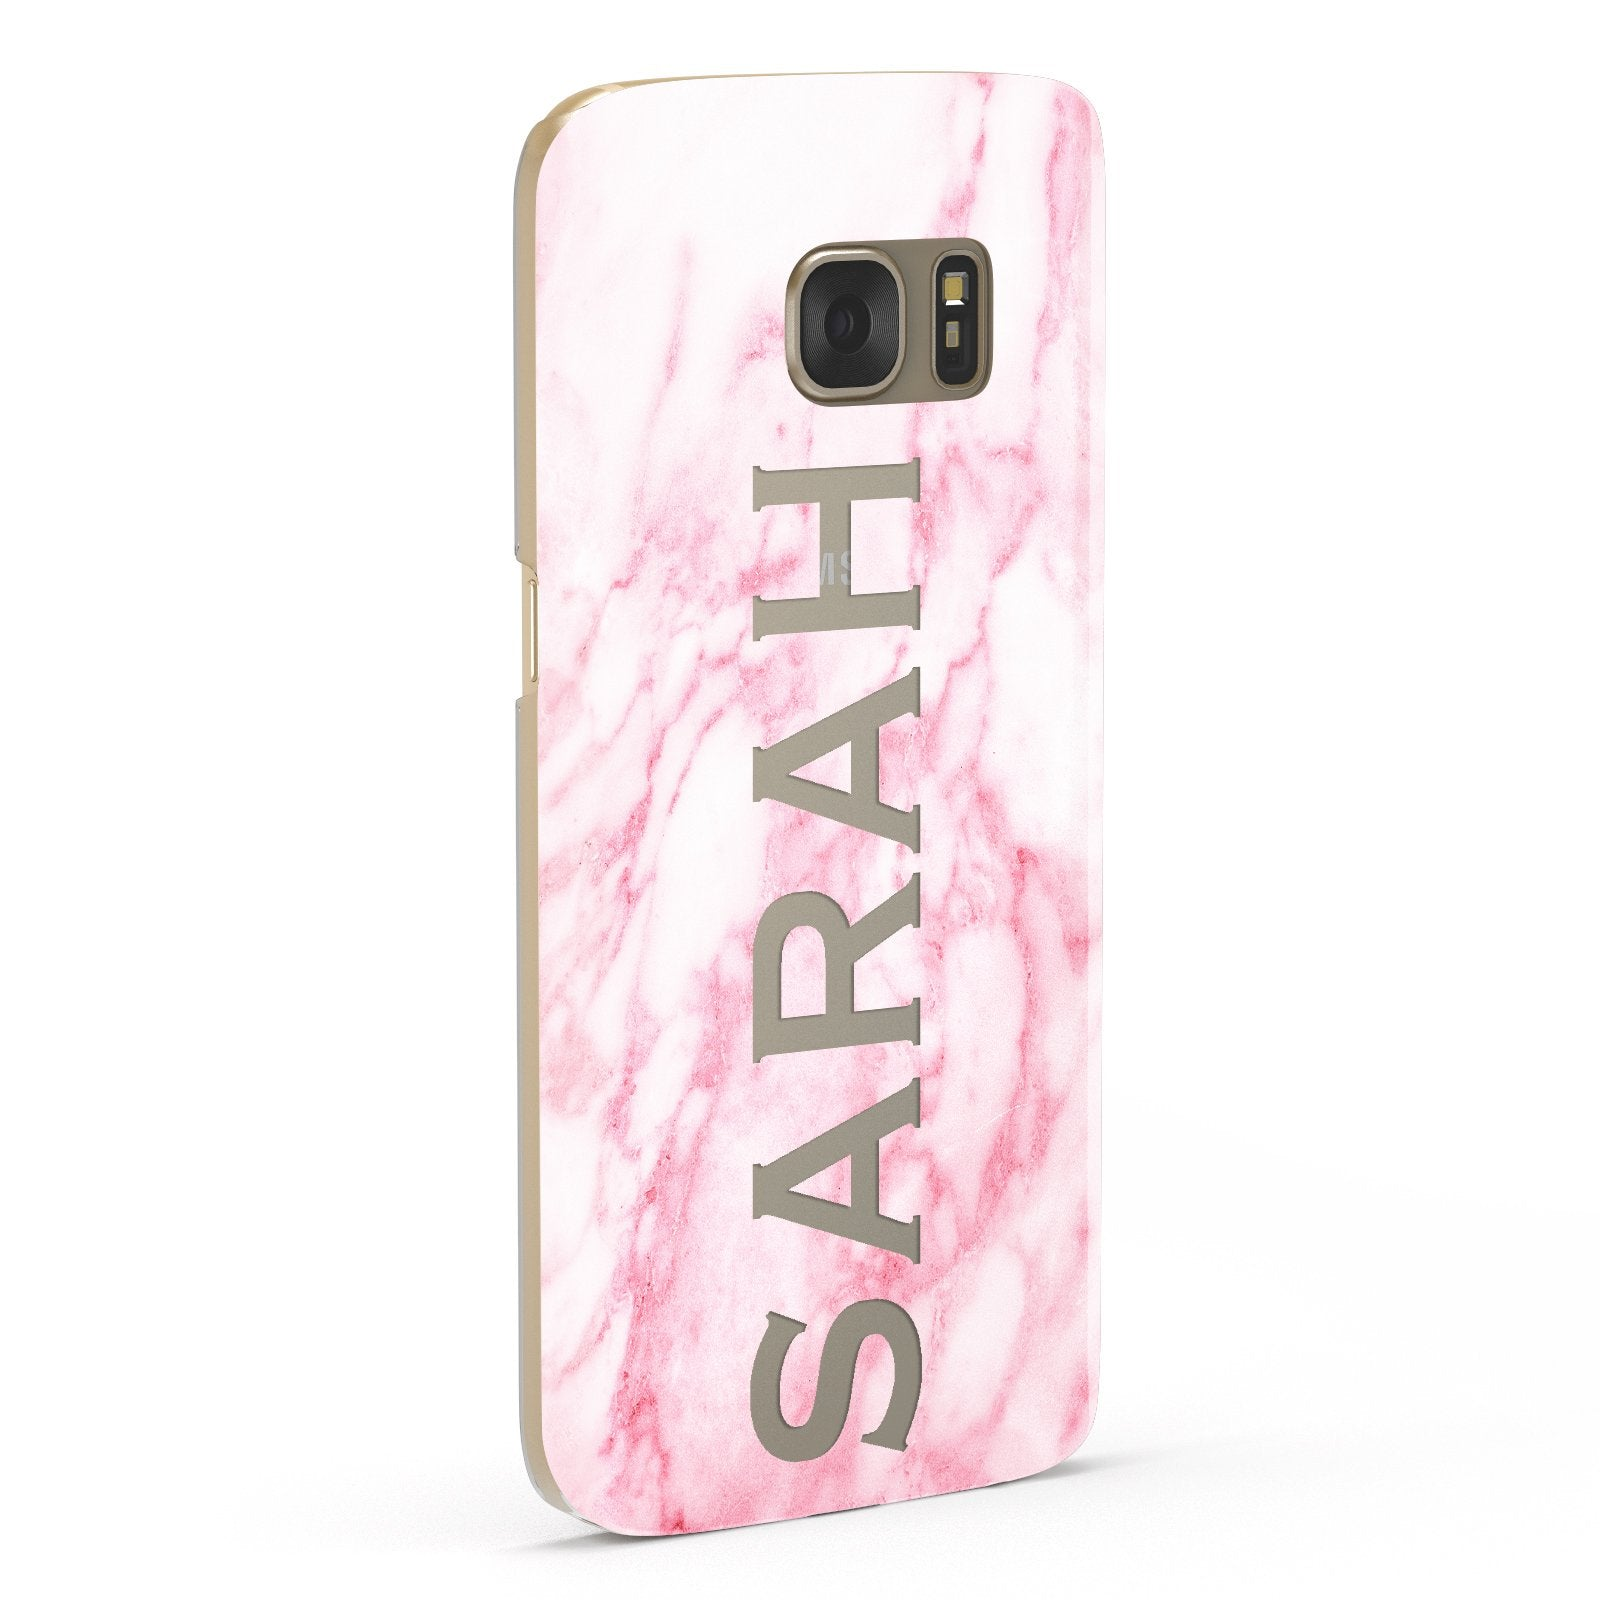 Personalised Clear Name Cutout Pink Marble Custom Samsung Galaxy Case Fourty Five Degrees